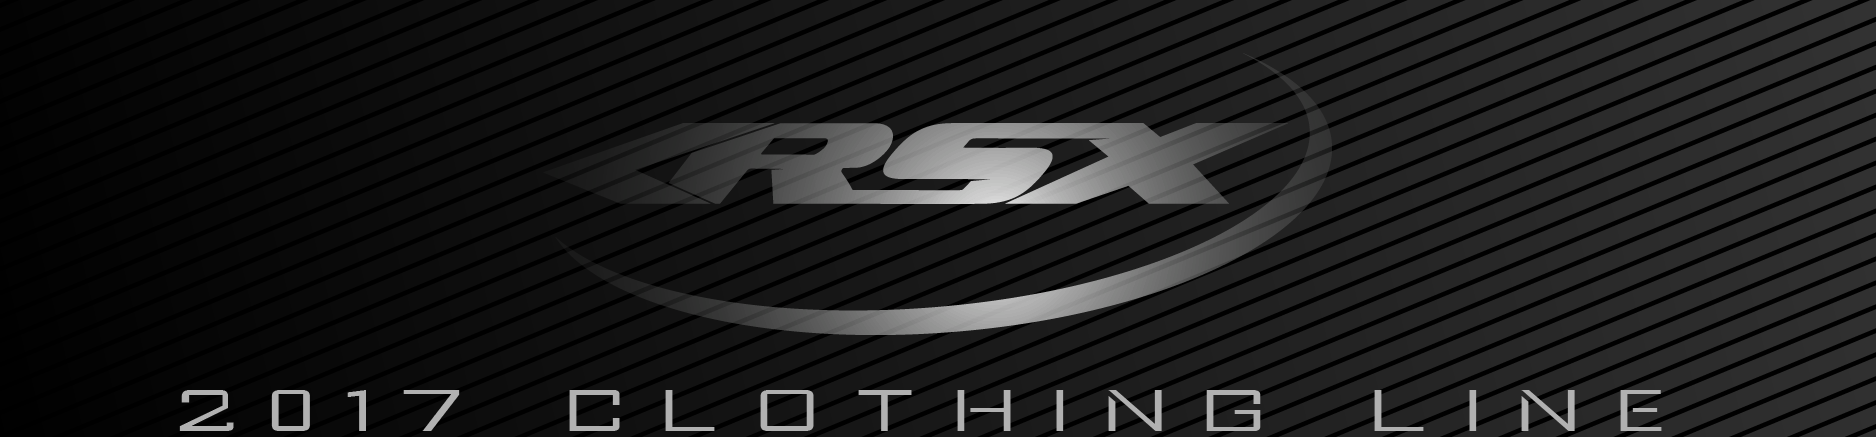 Head_RsxClothing_01-01.png